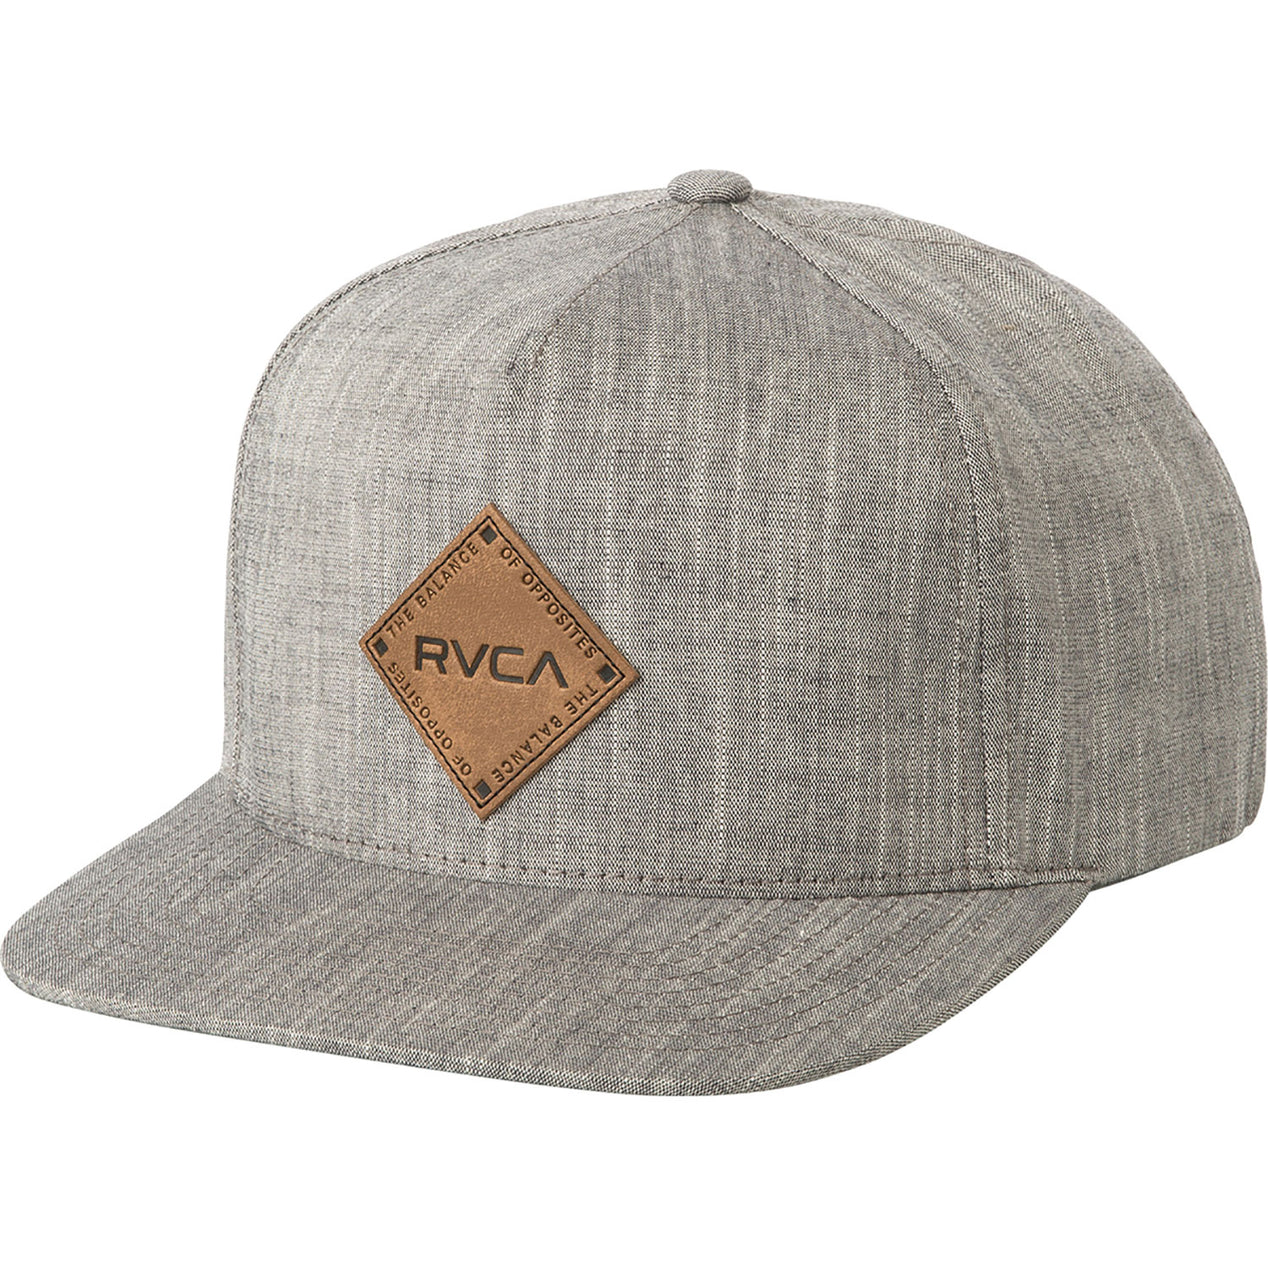 42b90ff4 Rvca Men's Finley Snapback Hat | Altitude Sports